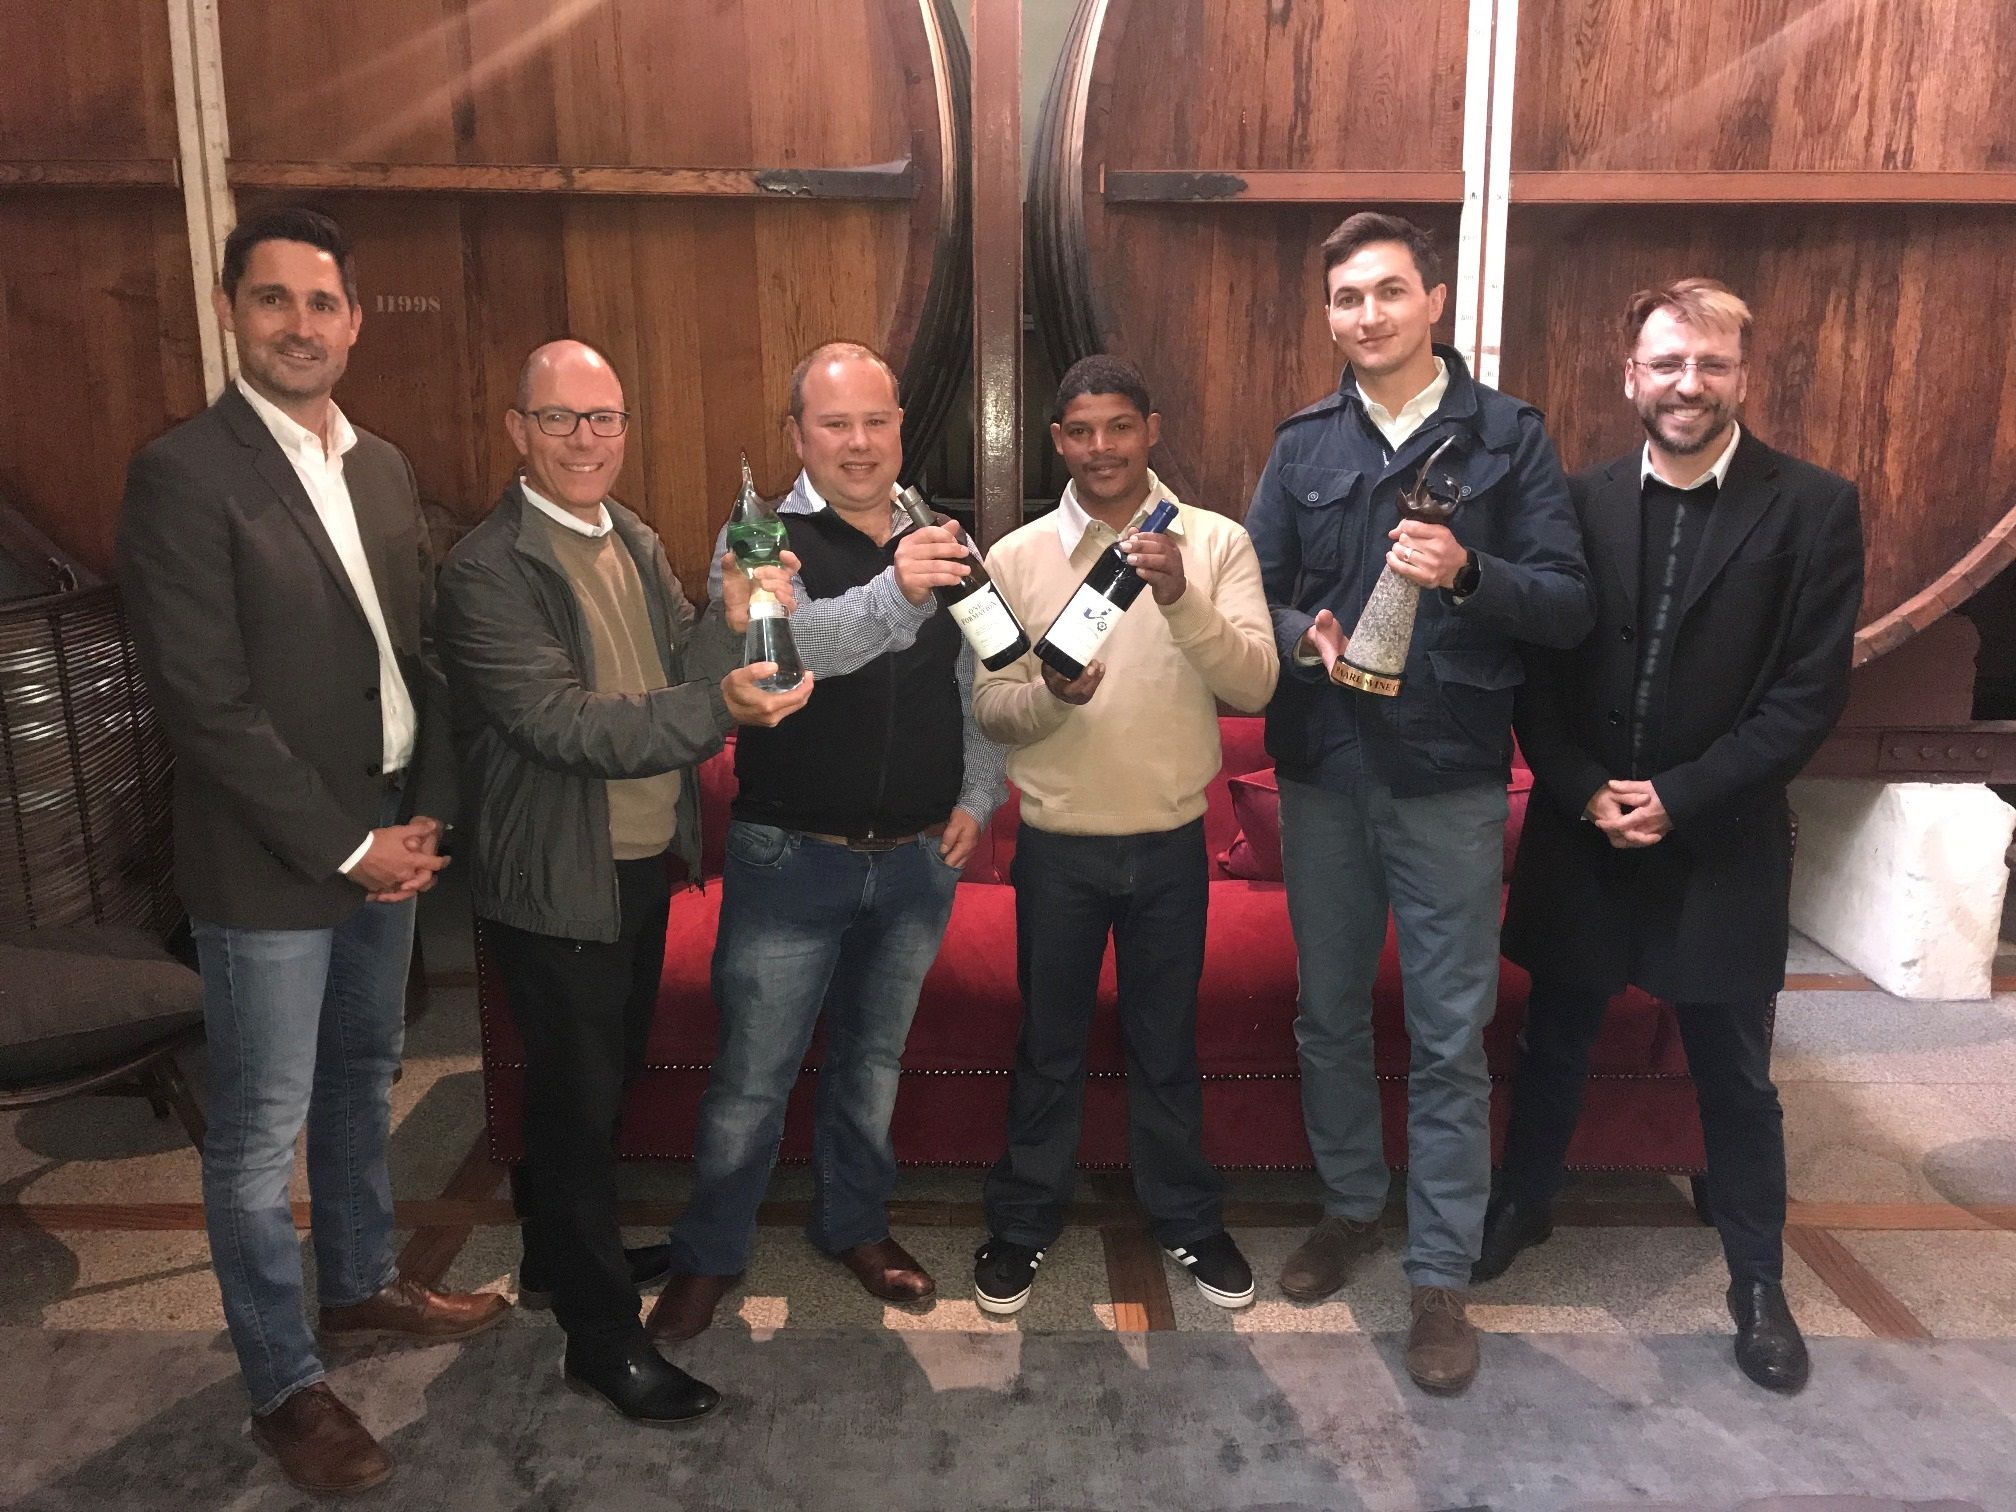 Babylonstoren, Boland Cellar Awarded Top Spot At Paarl Wine Challenge 2018 photo